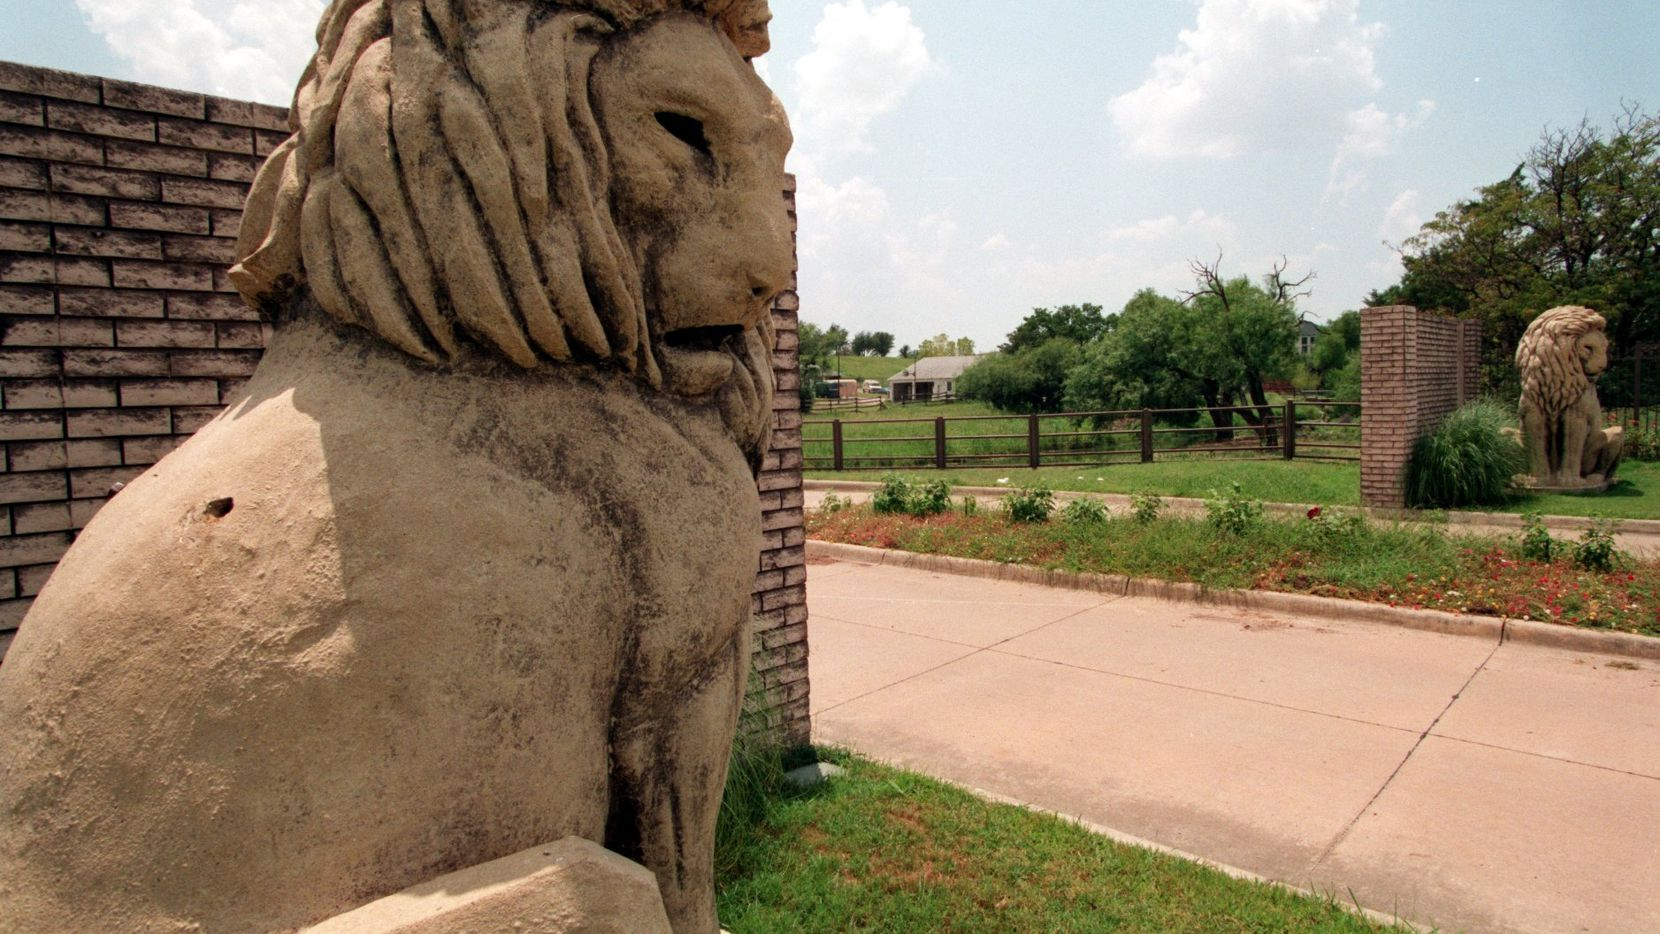 Two lion sculptures once guarded the ranch entrance for the Carpenters, the founders of Las Colinas.